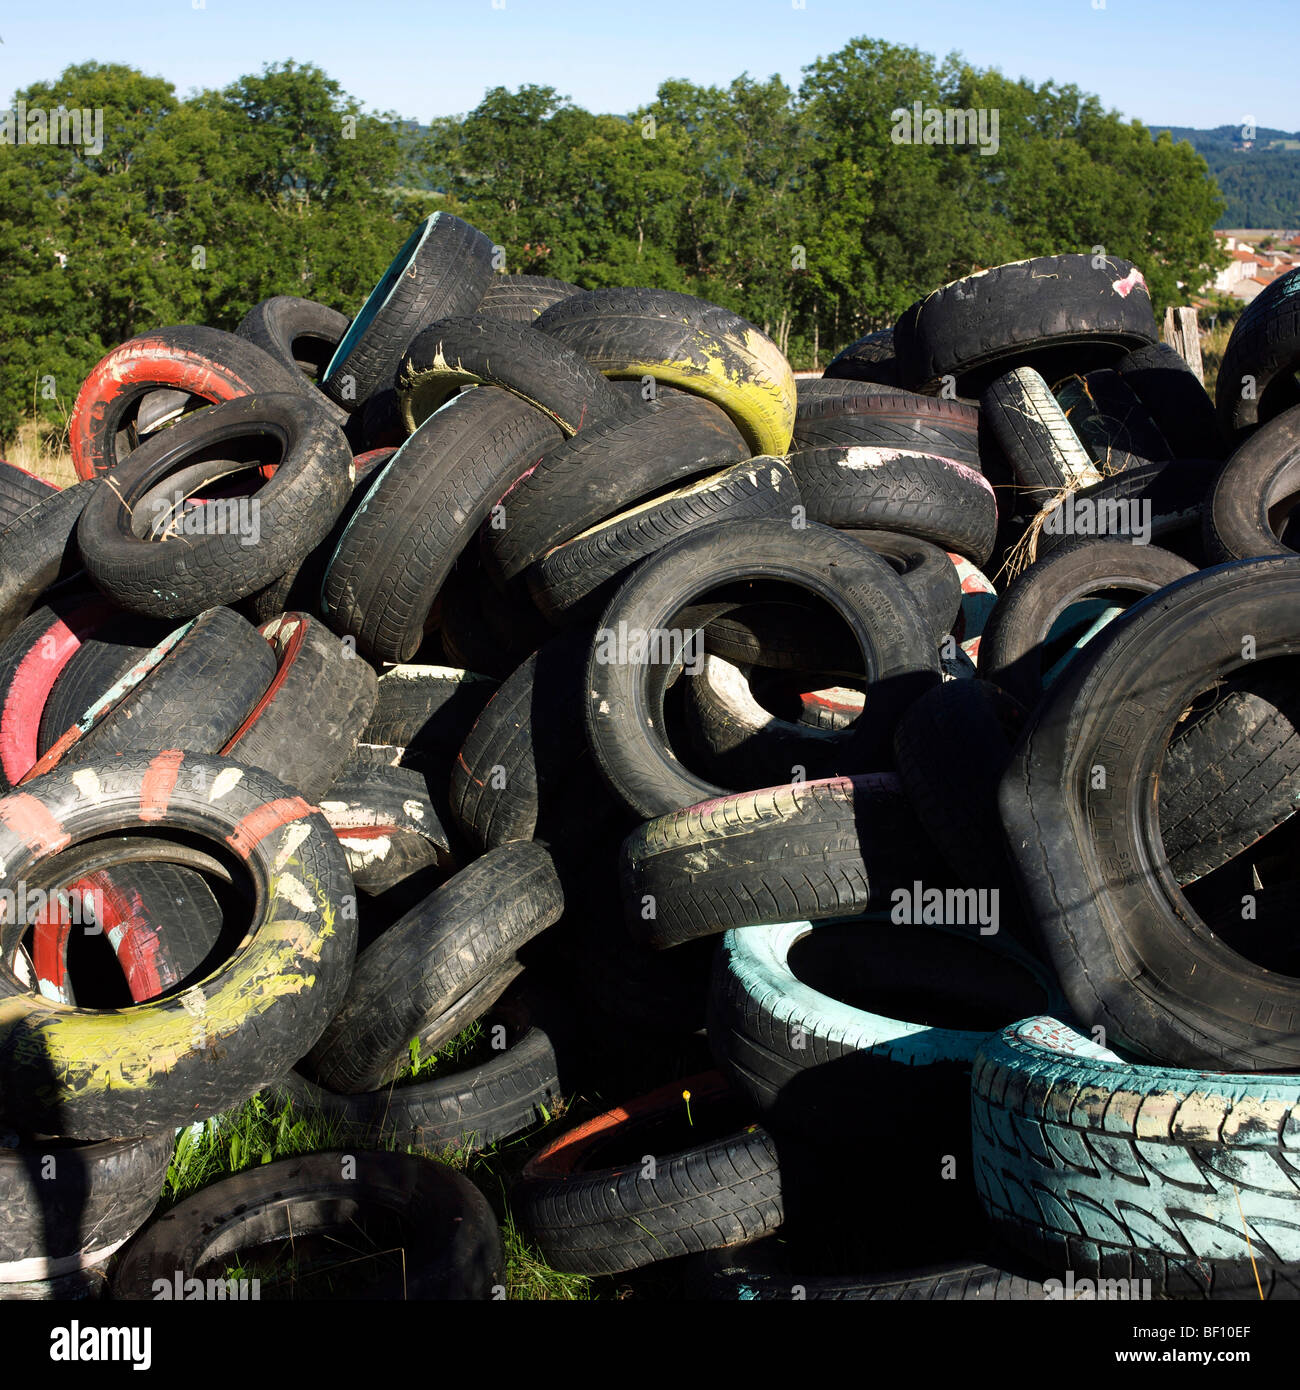 Stack of old rubber tires in the countryside. - Stock Image